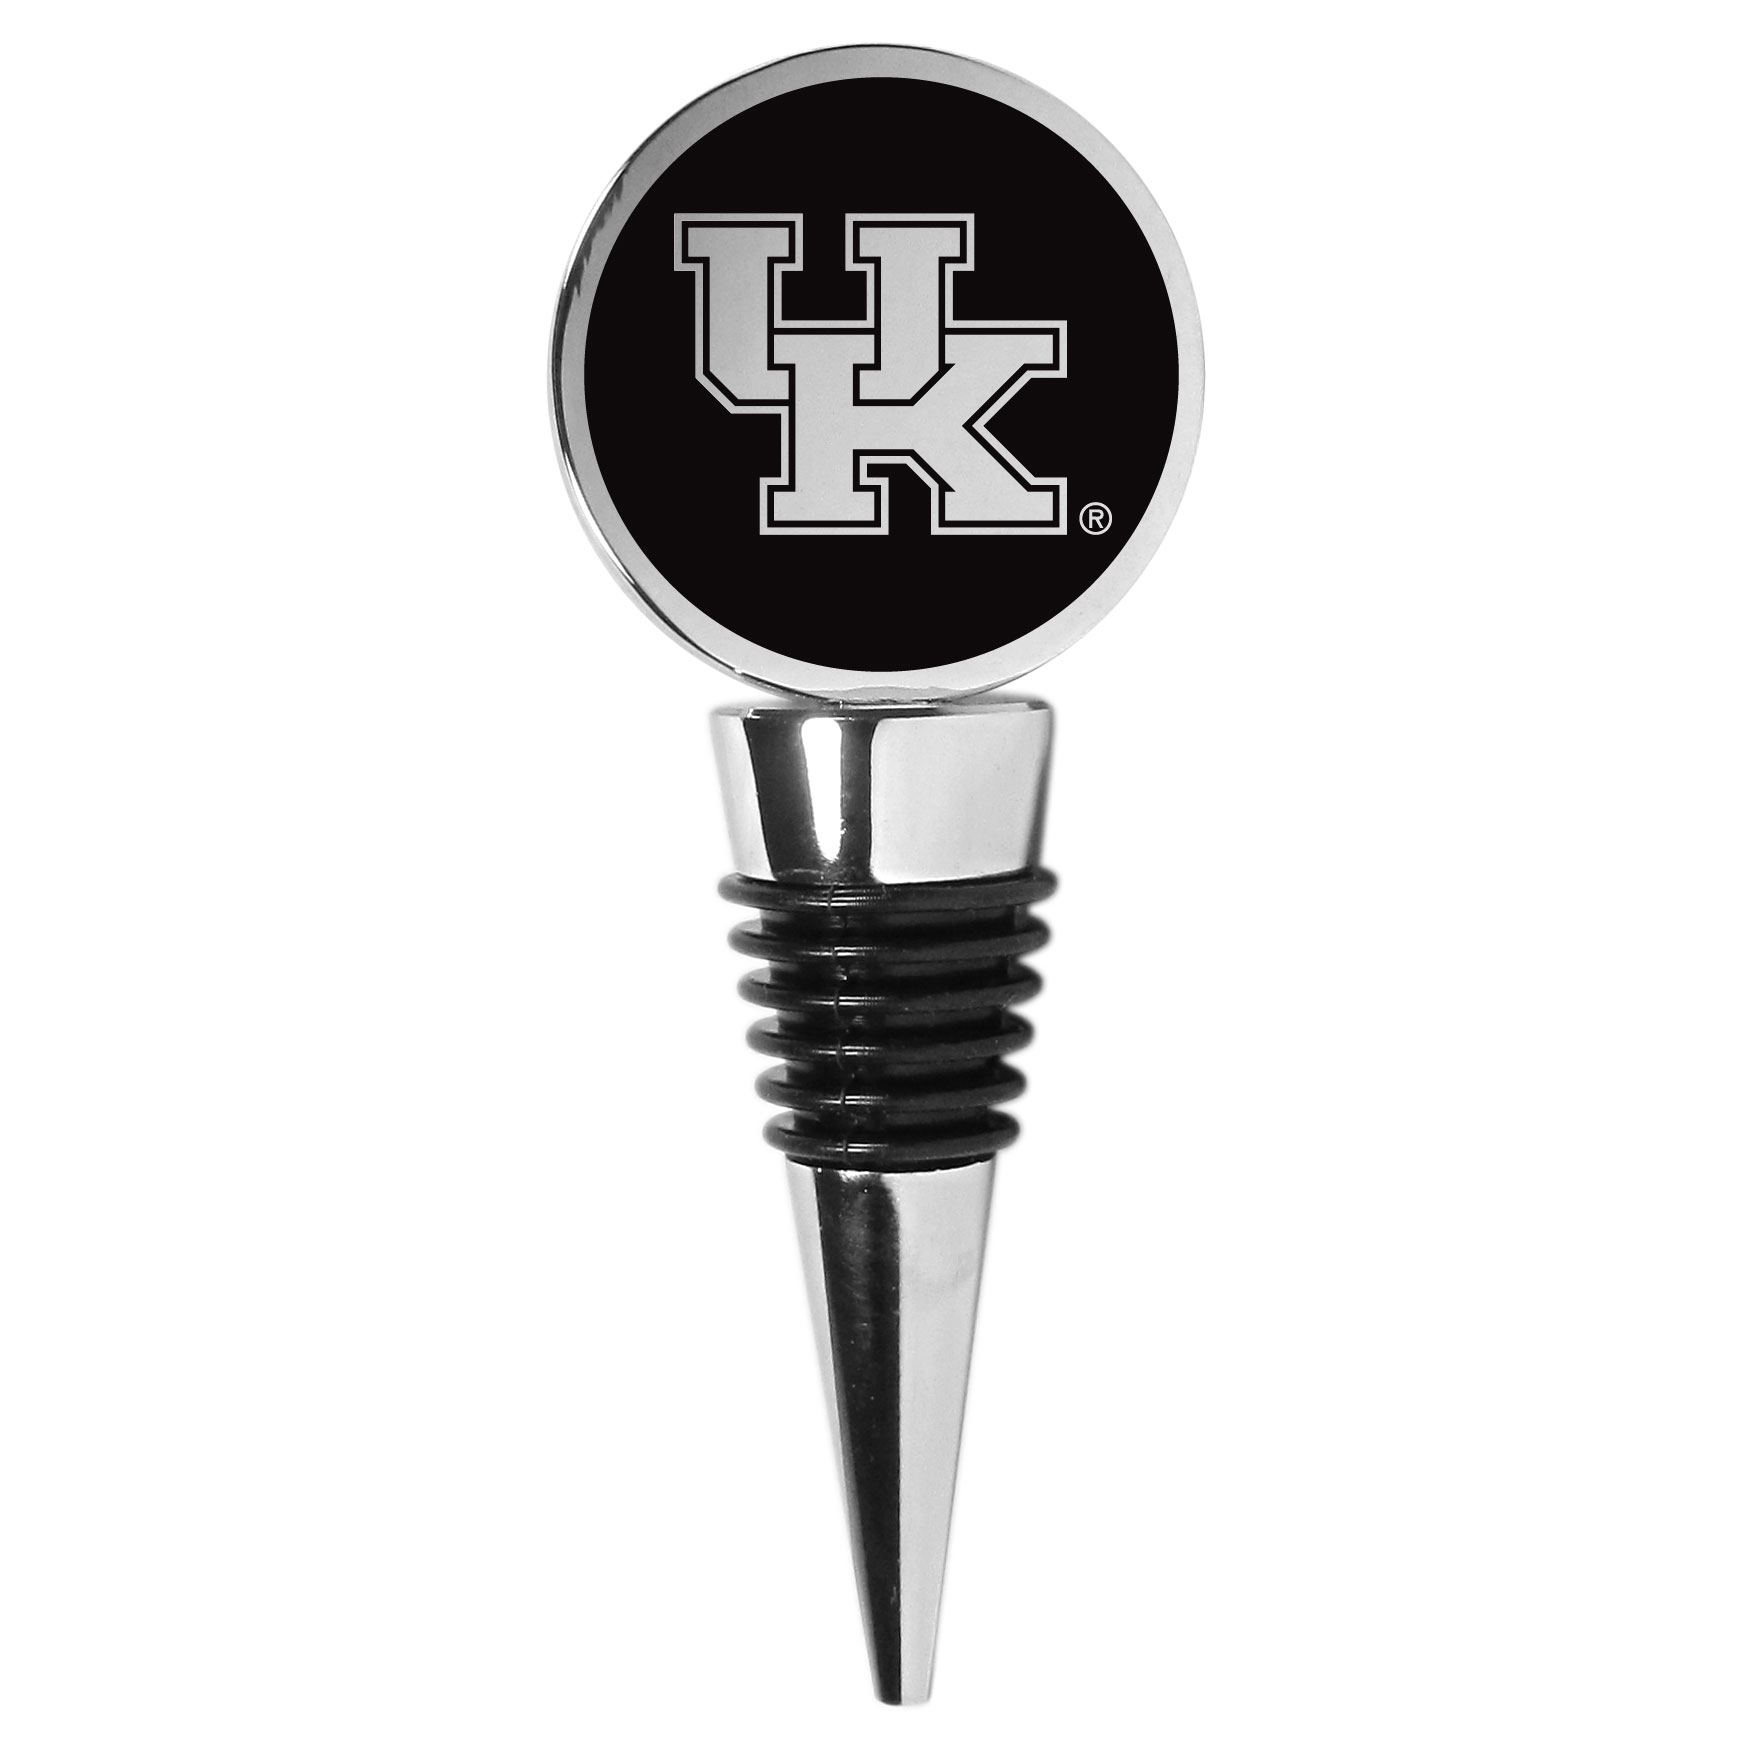 Kentucky Wildcats Wine Stopper - This beautiful Kentucky Wildcats wine stopper has a classy monochromatic logo on the top disc. The tapered rubber rings allow you to create a tight seal on multiple sizes of wine bottles so that you are able to preserve the wine for later enjoyment. This a perfect addition to a game day celebration.